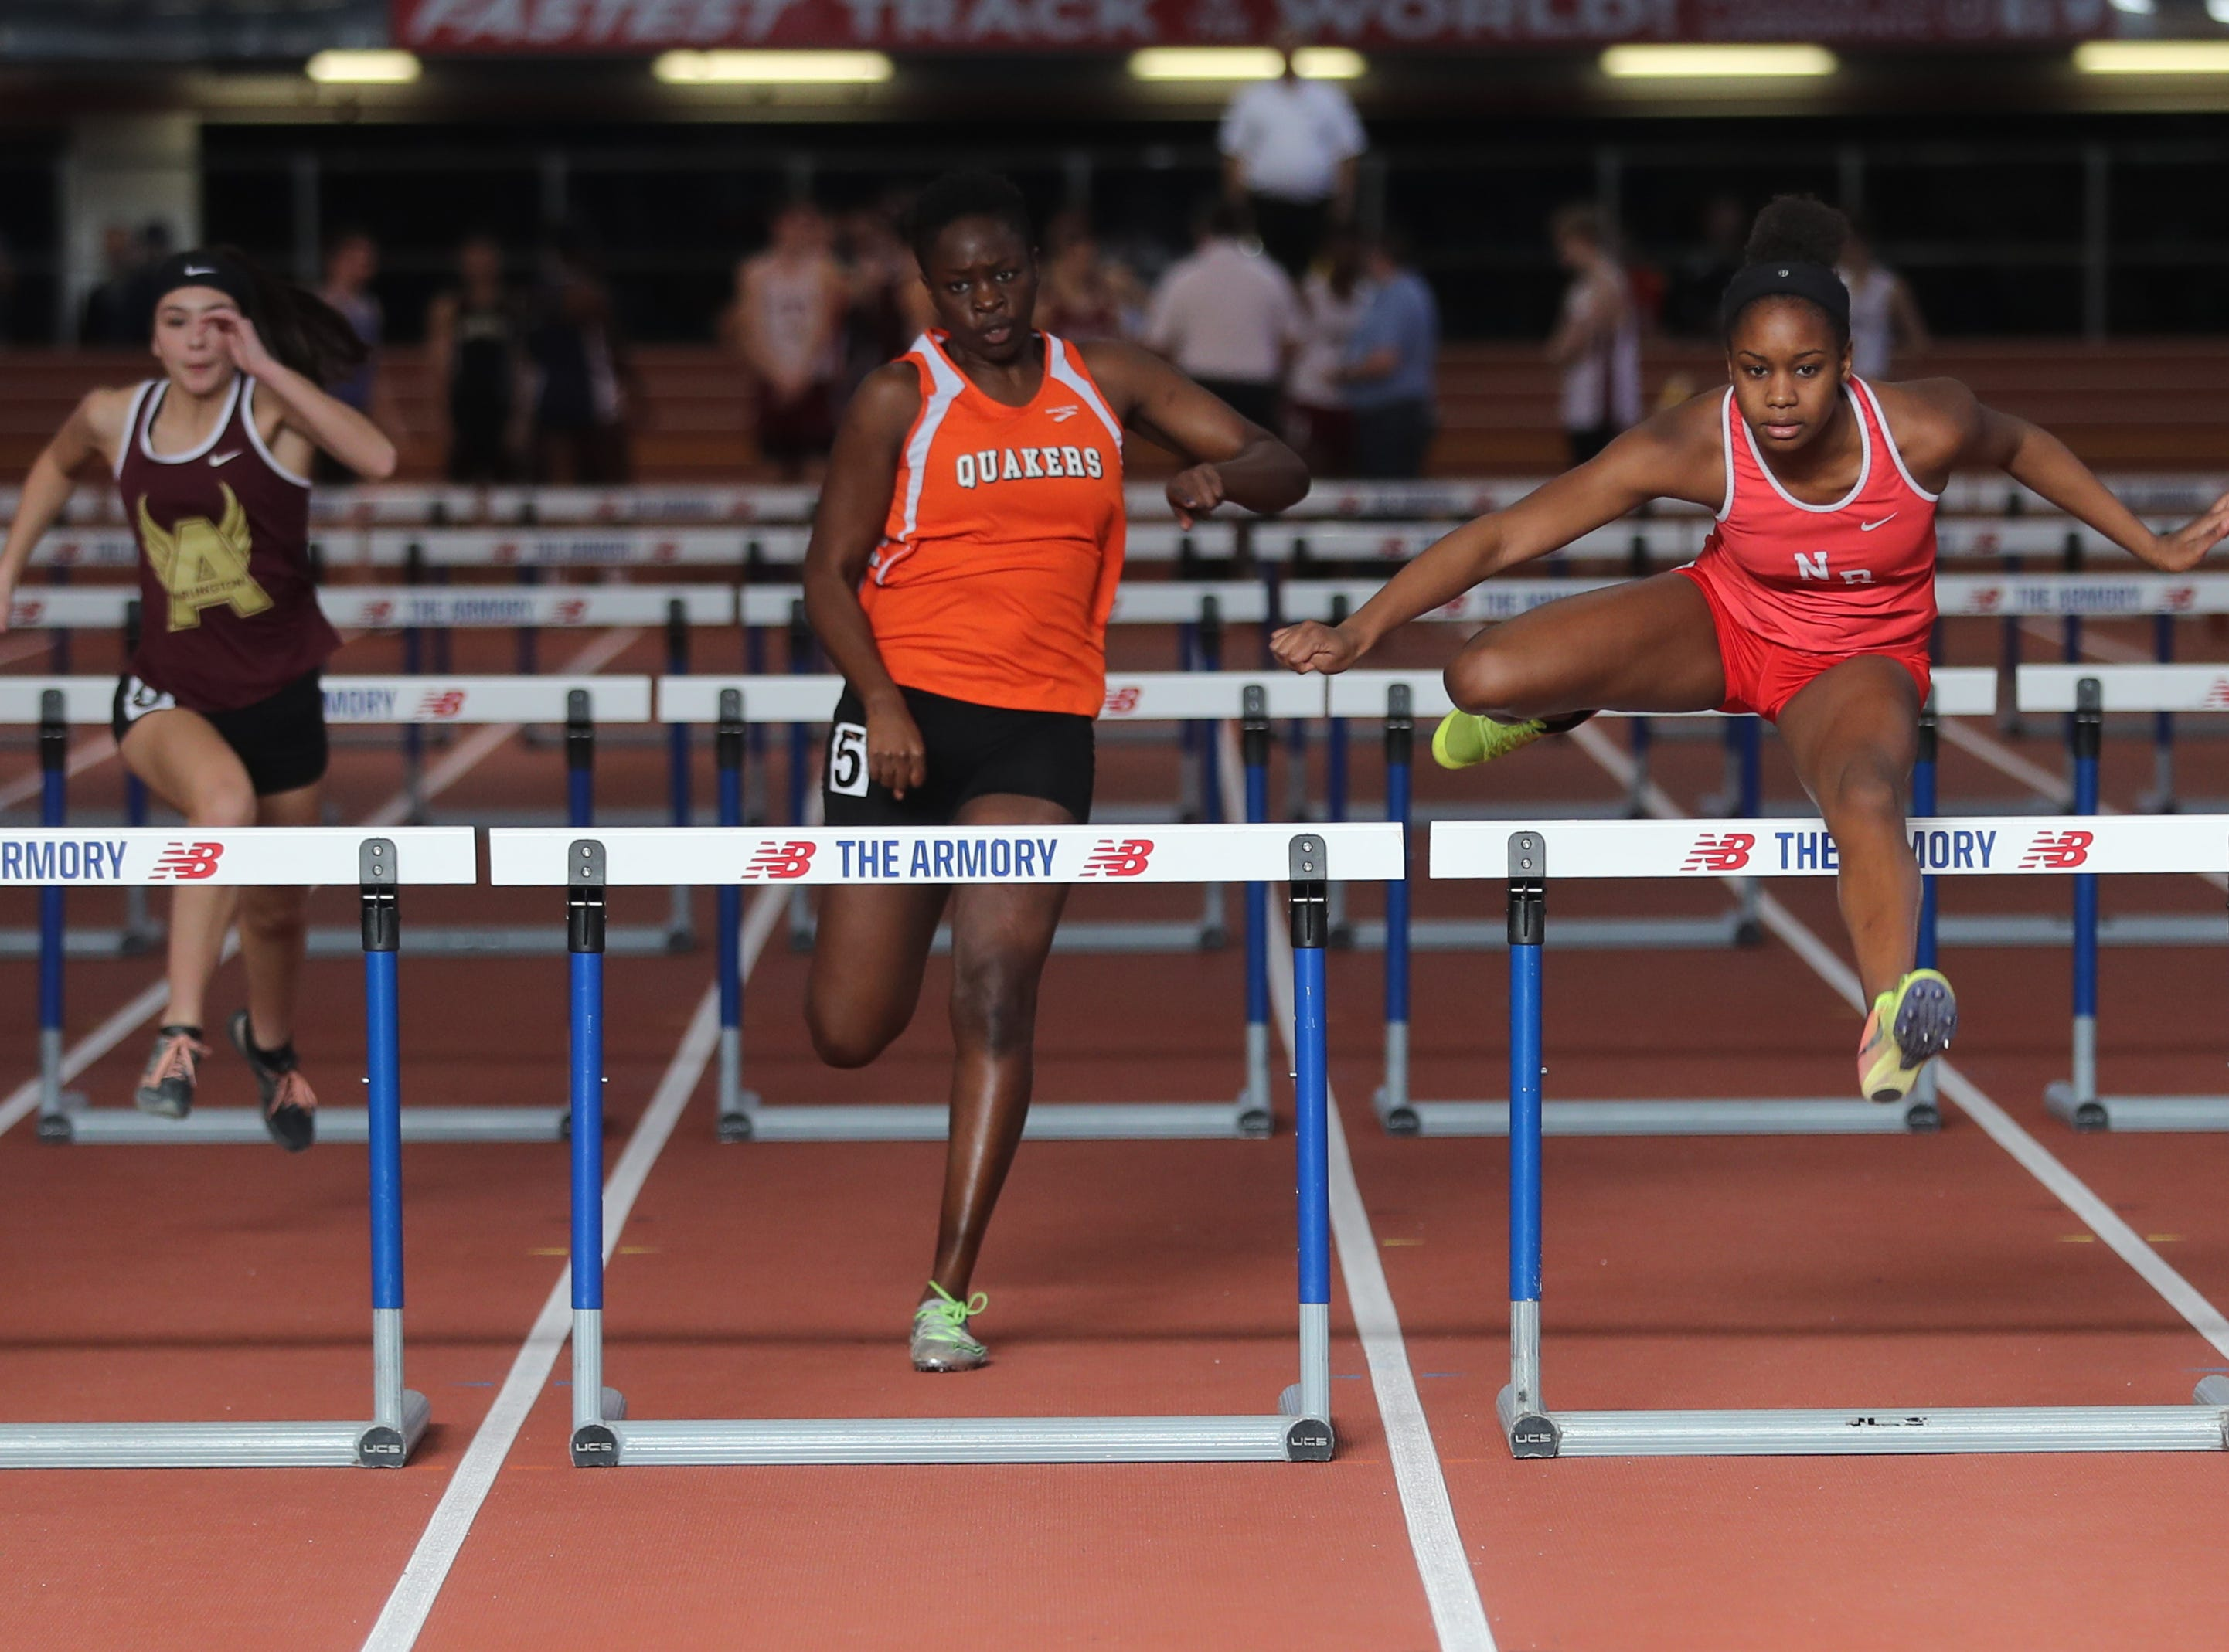 Nadia Saunders, right, of North Rockland won her heat in the 55 meter hurdles during the Section 1 New York State Track and Field State Qualifier at the New Balance Armory in Manhattan Feb. 17, 2019.